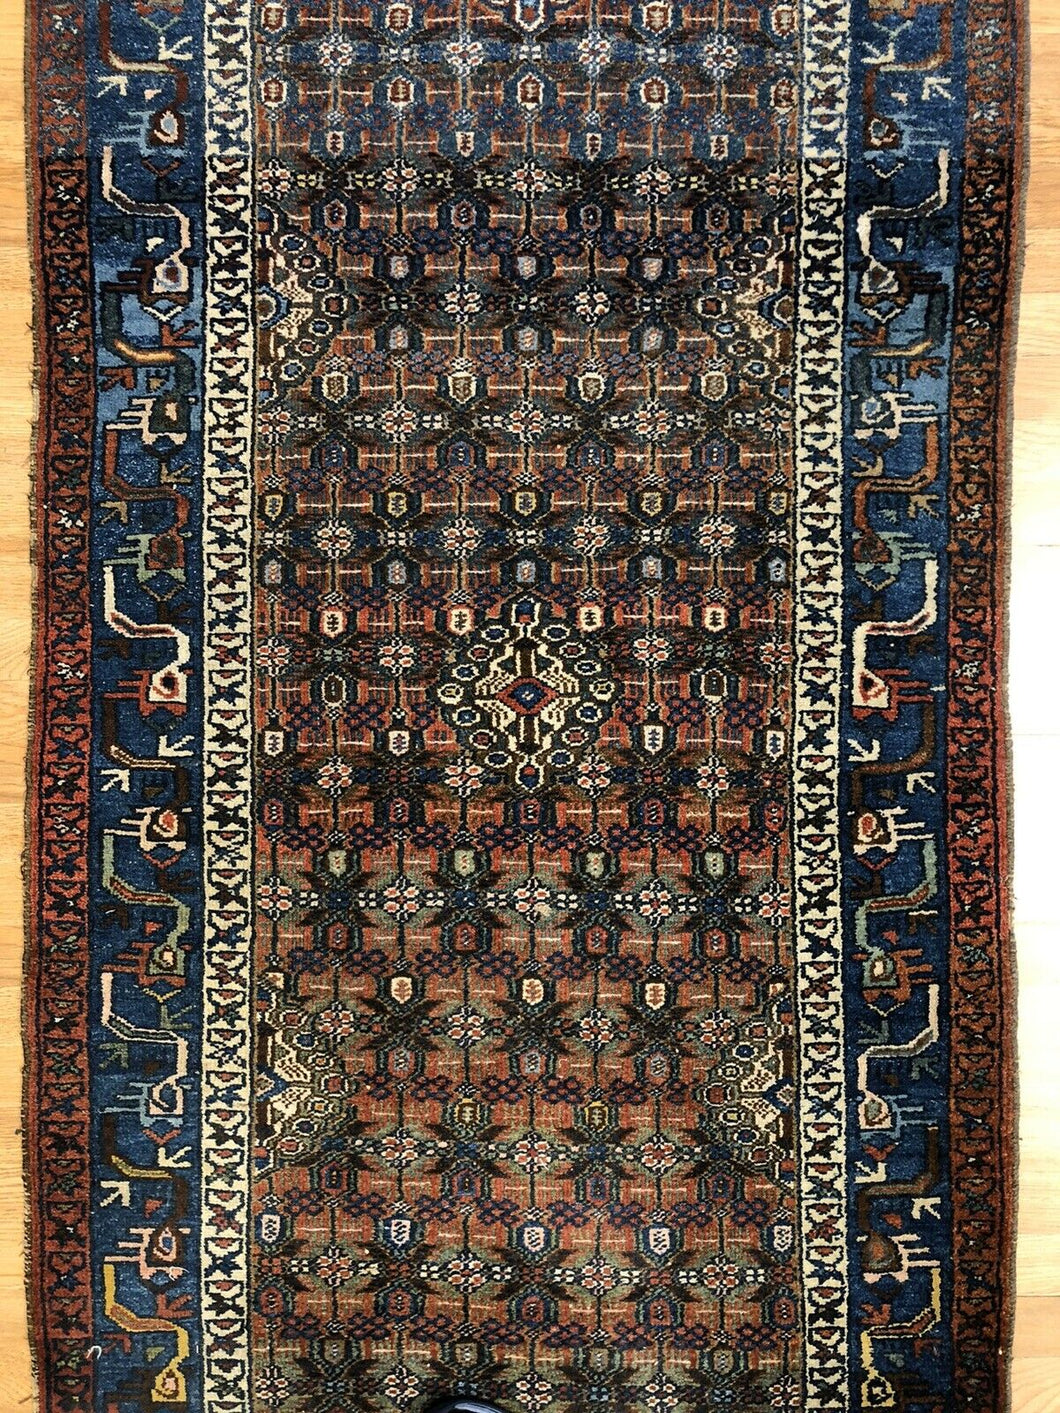 Special Serab - 1900s Antique Persian Runner - Camel Hair Rug - 3'4